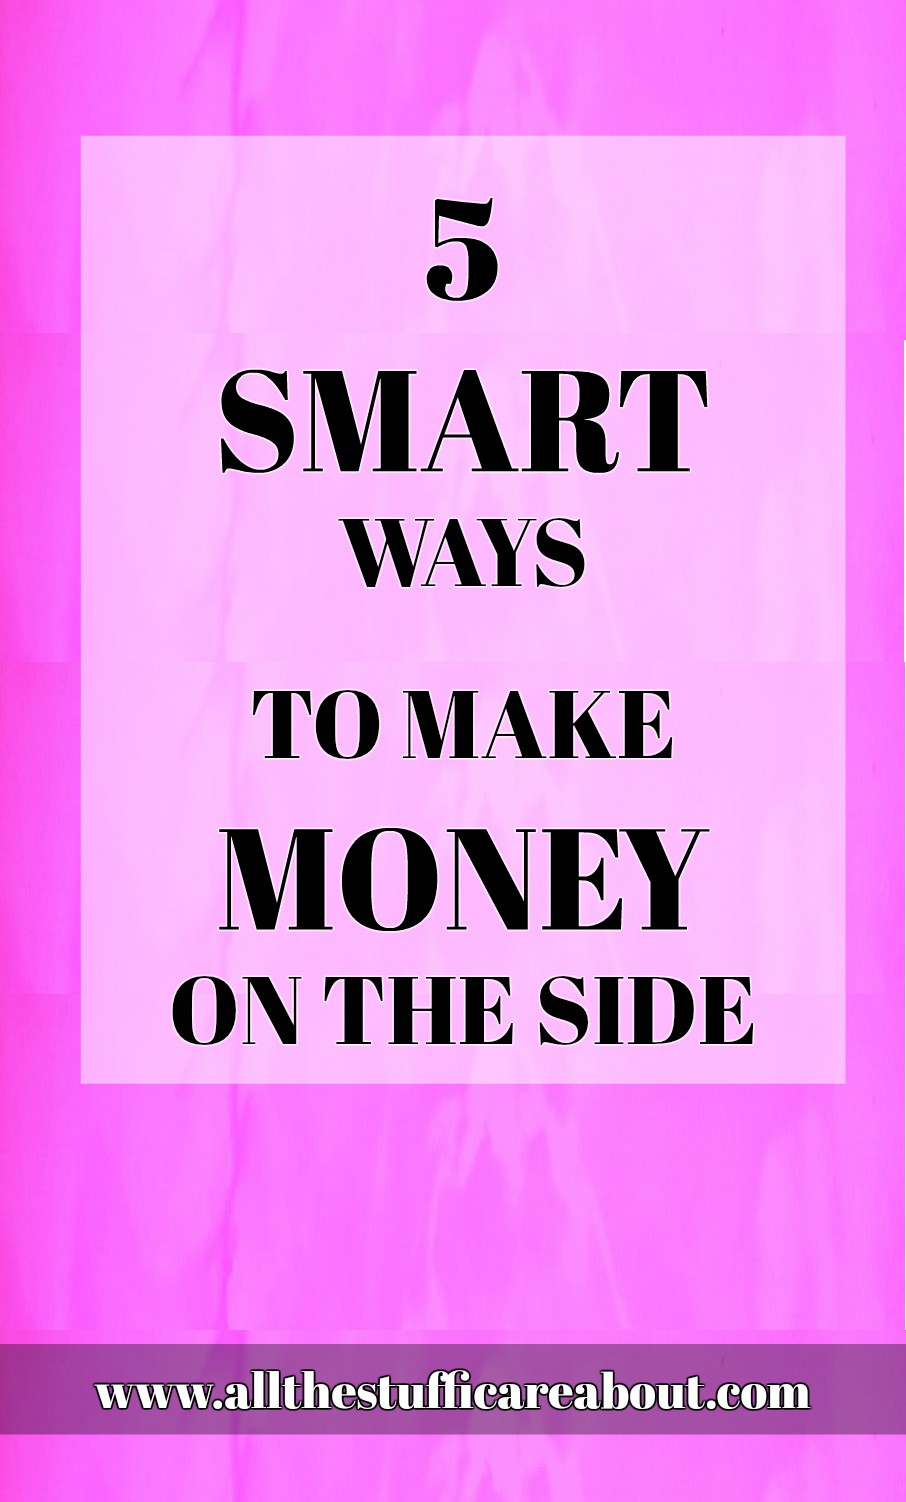 5 smart ways to make money on the side